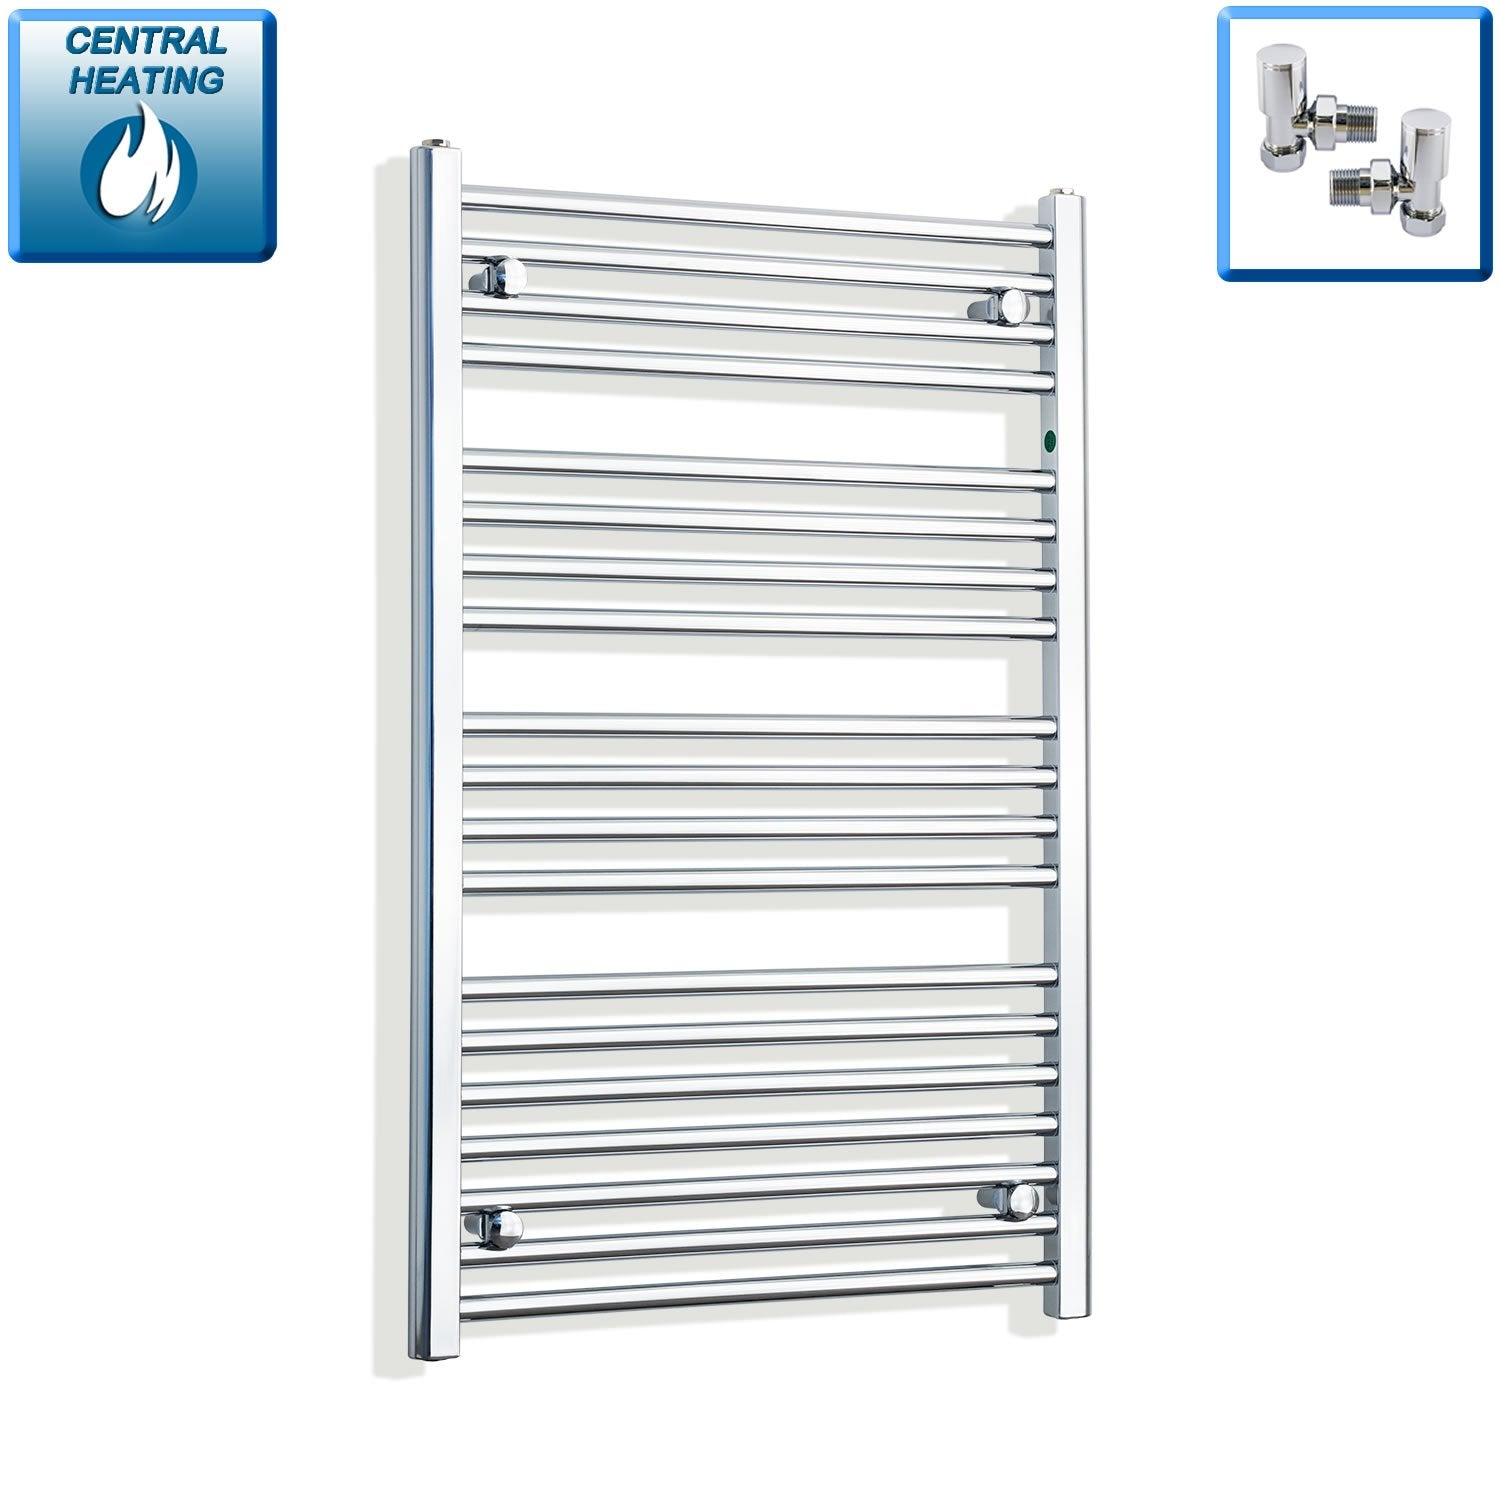 700mm Wide 1000mm High Curved Chrome Heated Towel Rail Radiator HTR,With Angled Valve